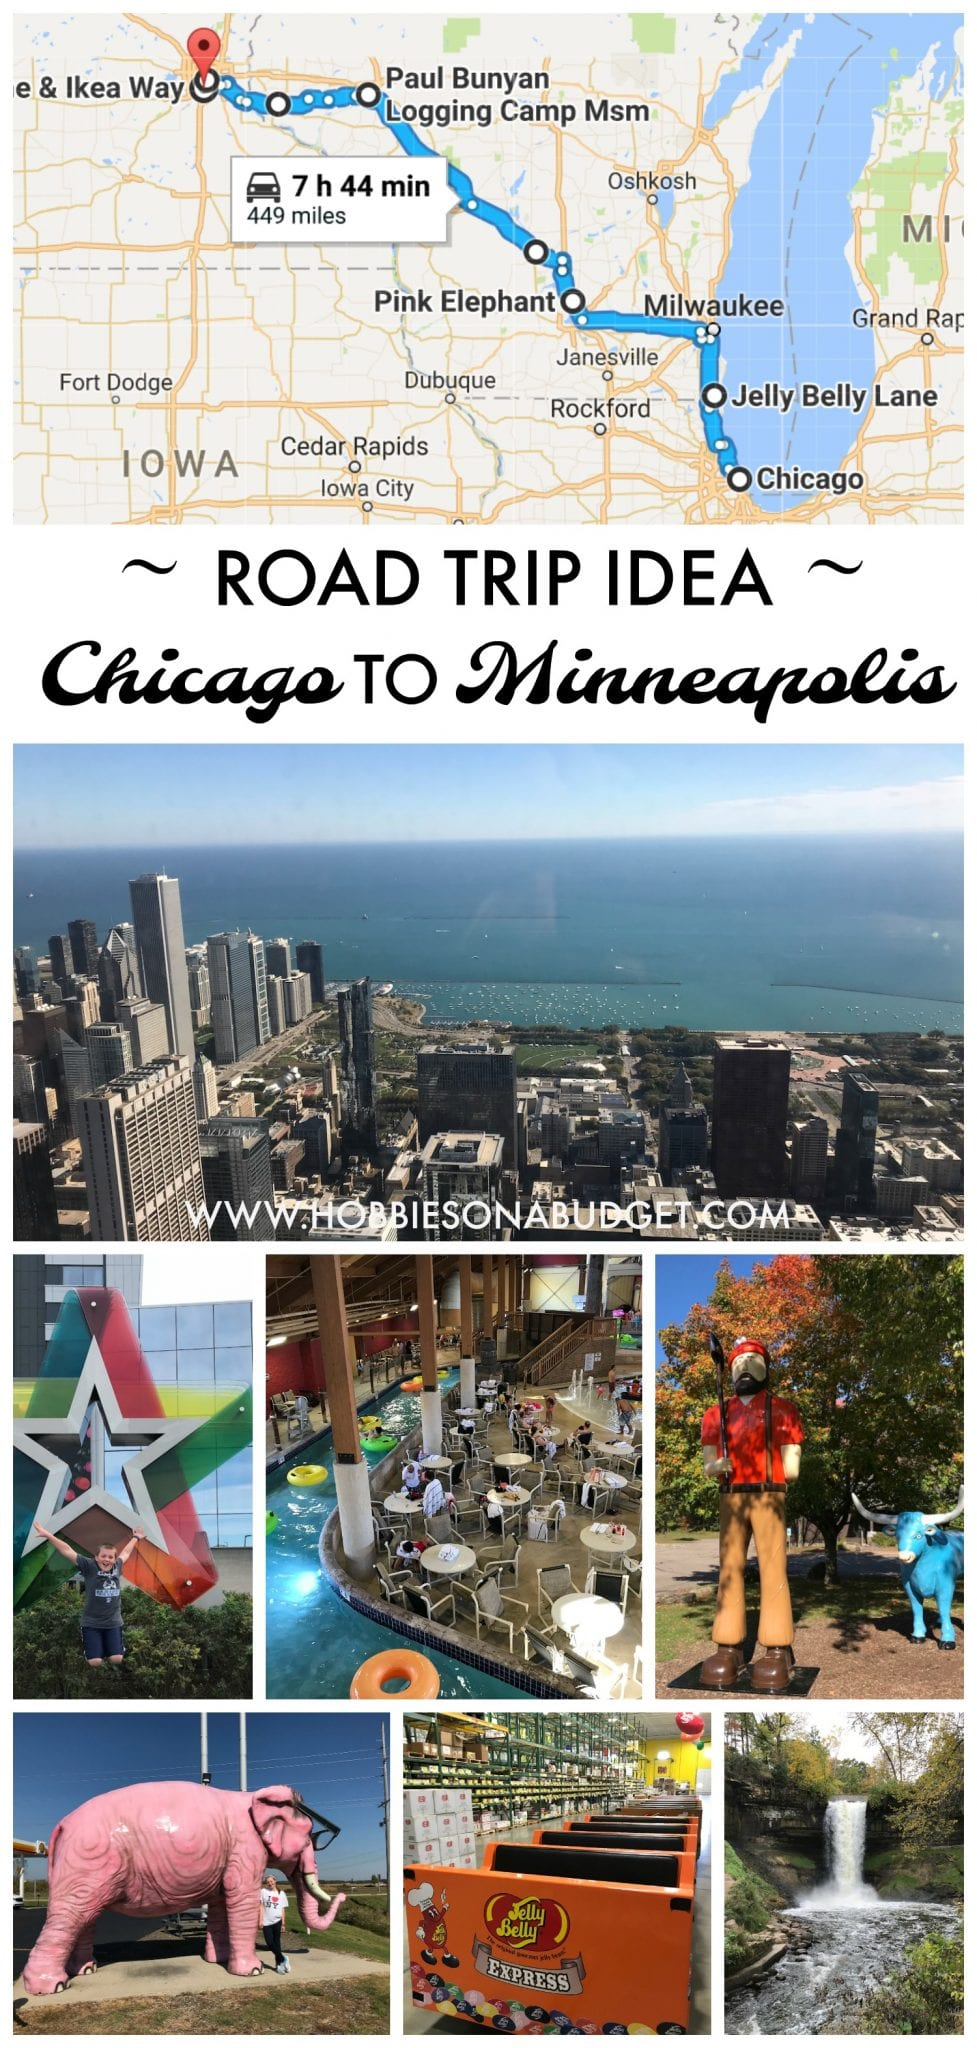 Road Trip Idea: Chicago to Minneapolis